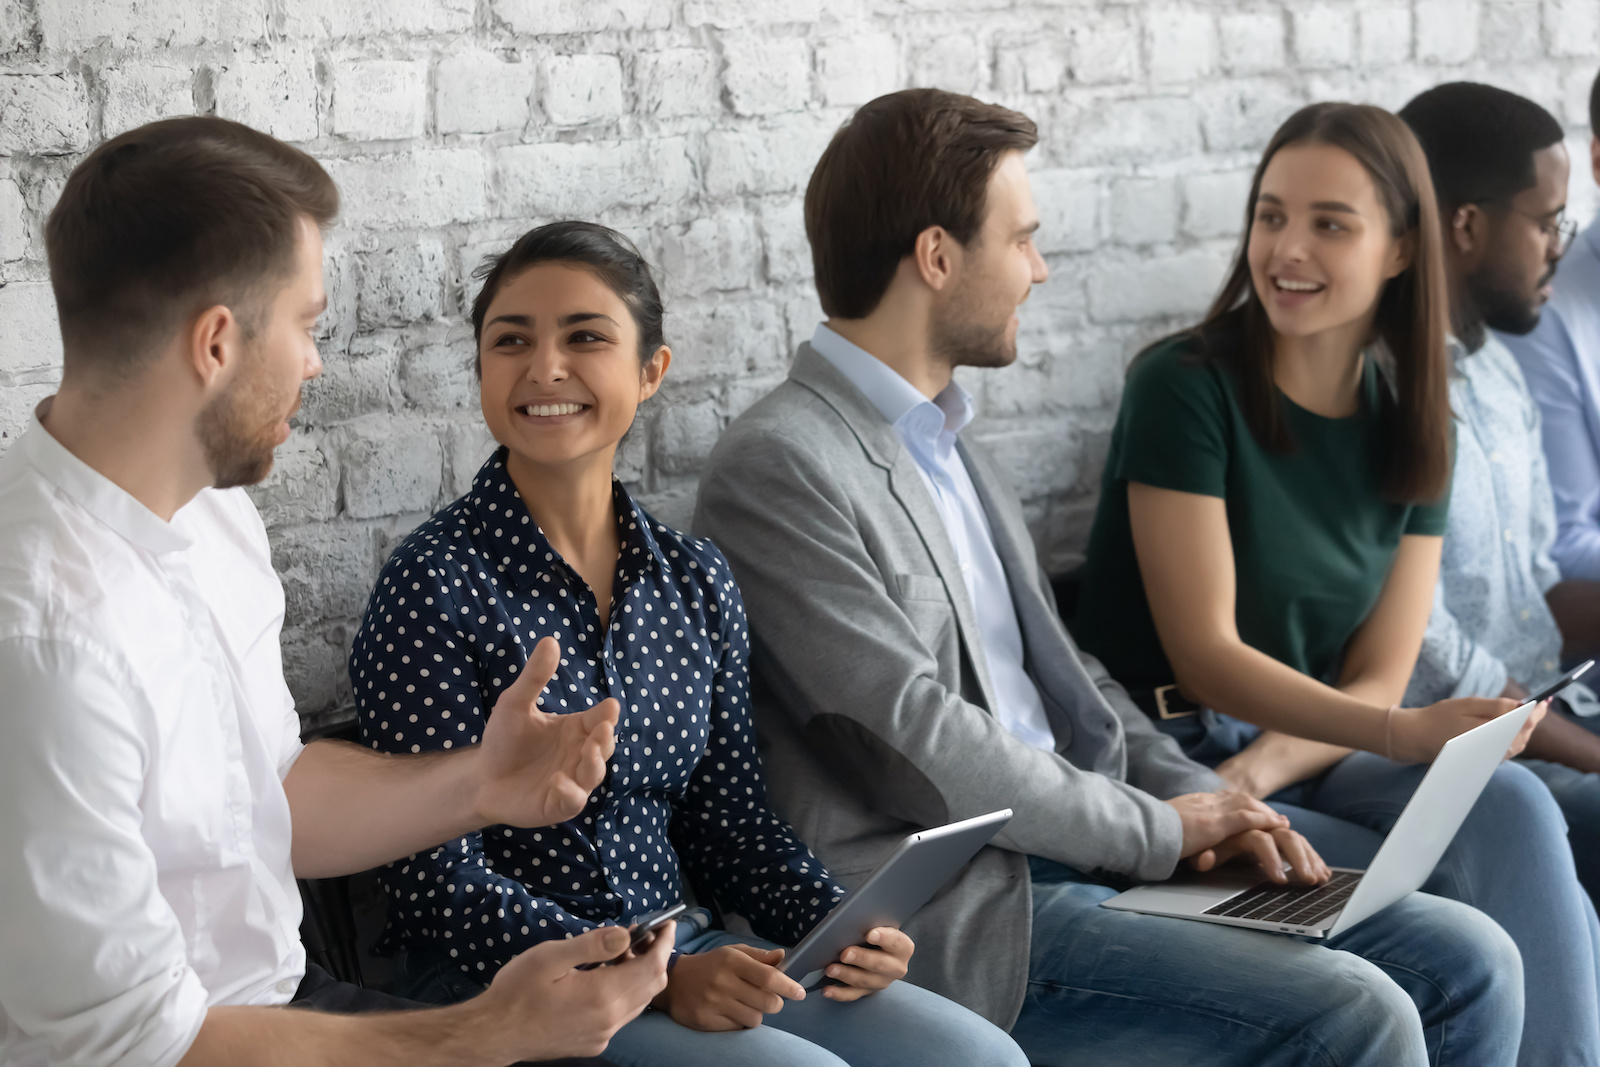 VMware internship: Applicants talking with each other while waiting in line